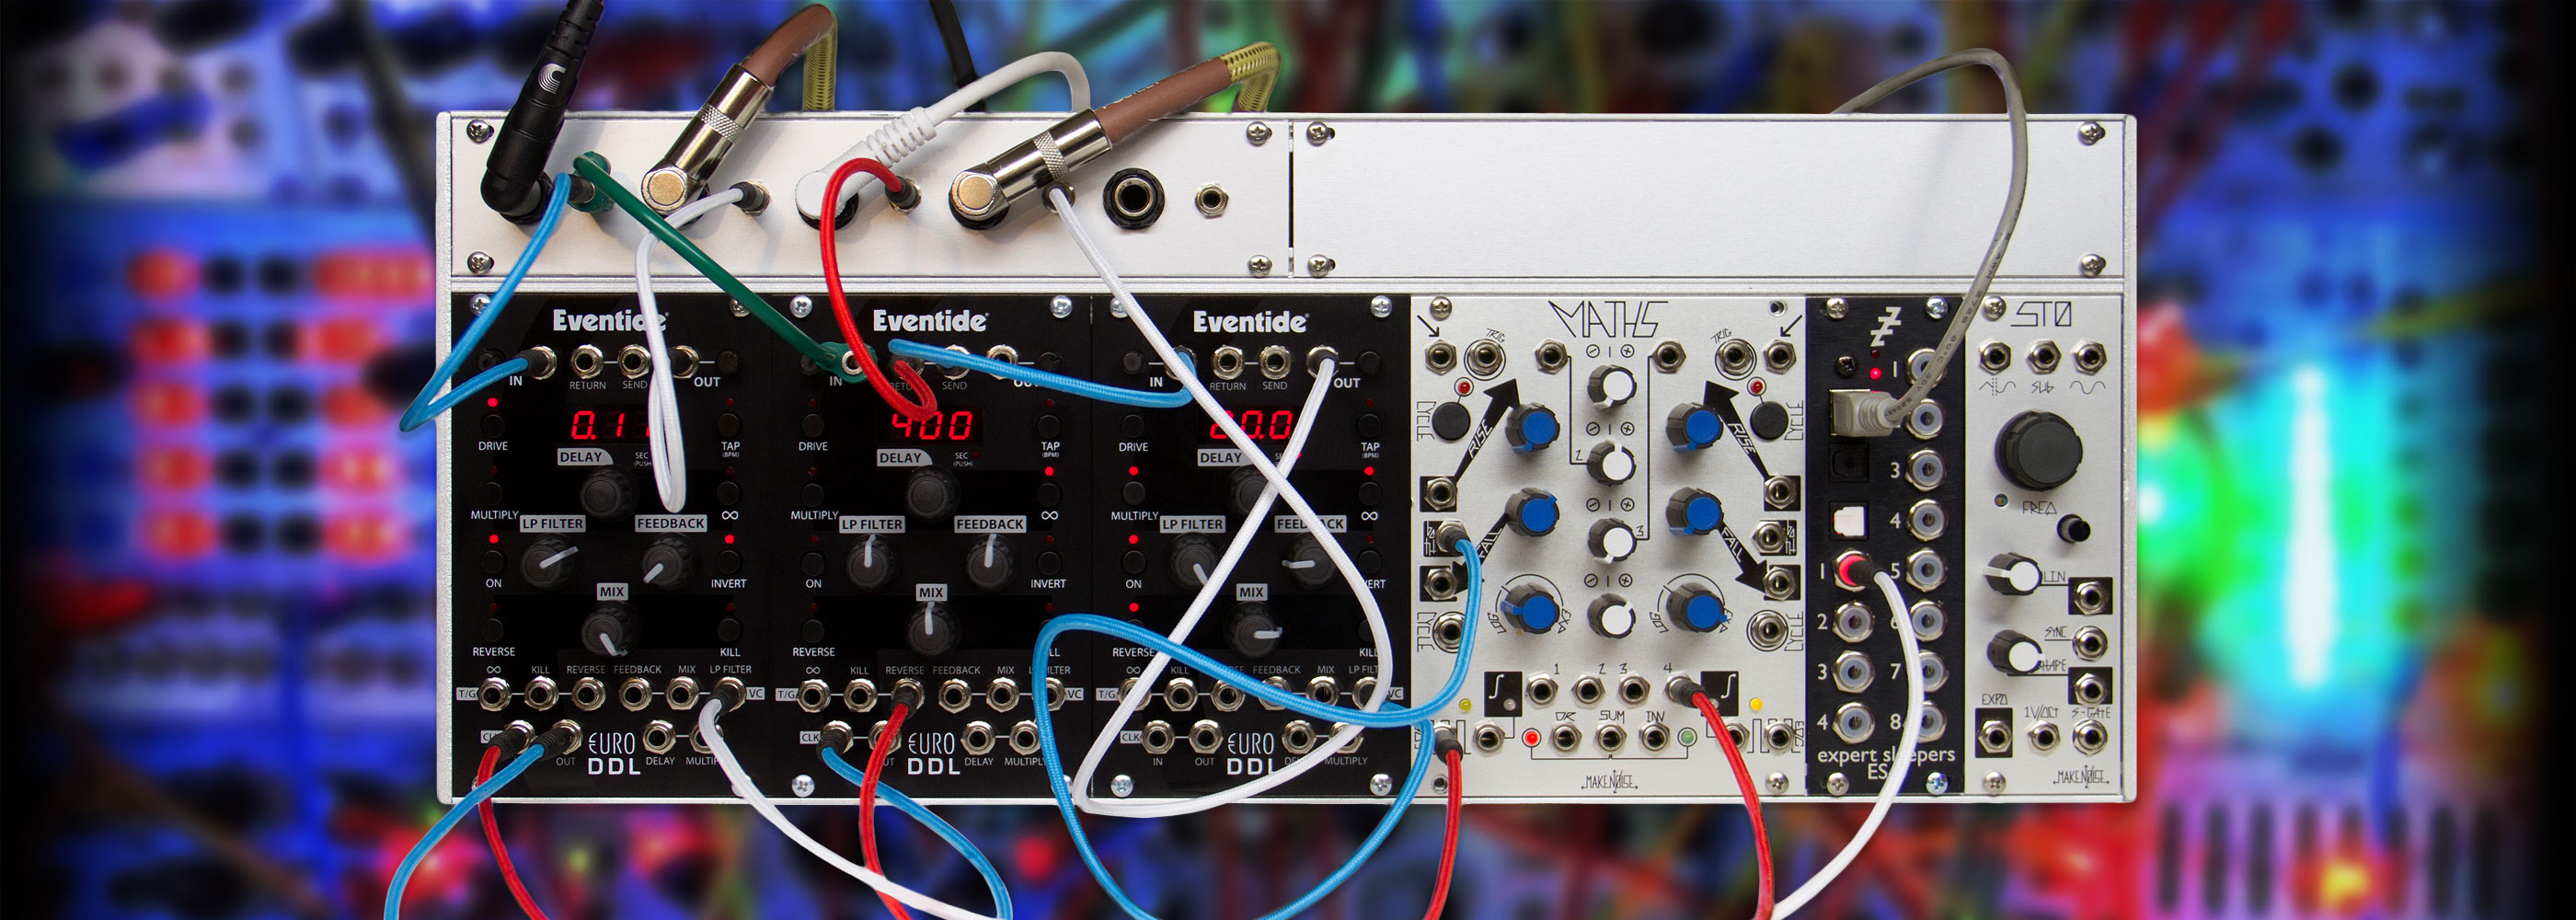 Euro DDL| Eventide Digital Delay Module for Eurorack